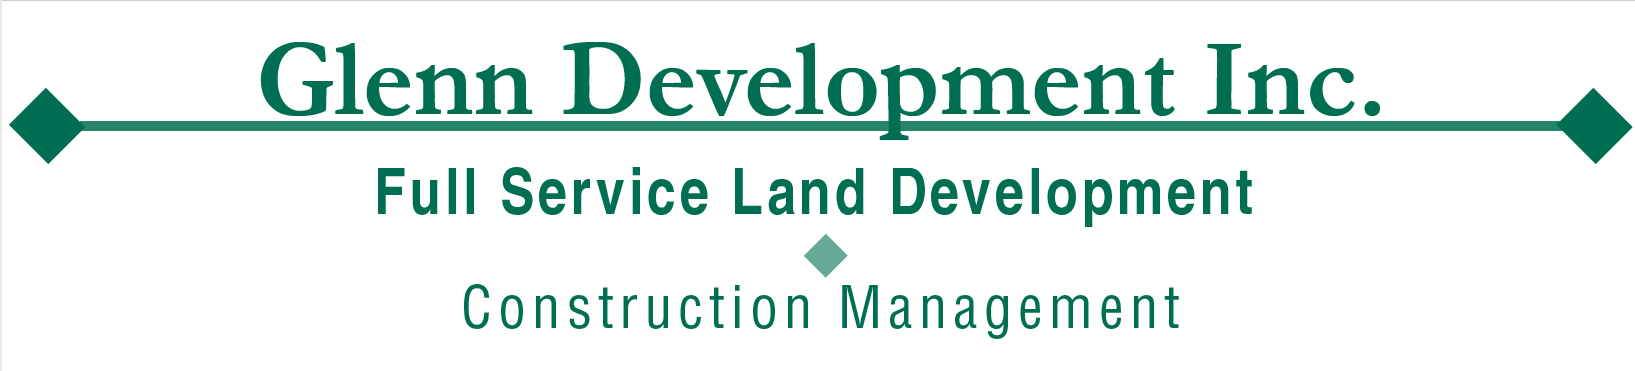 Glenn Development